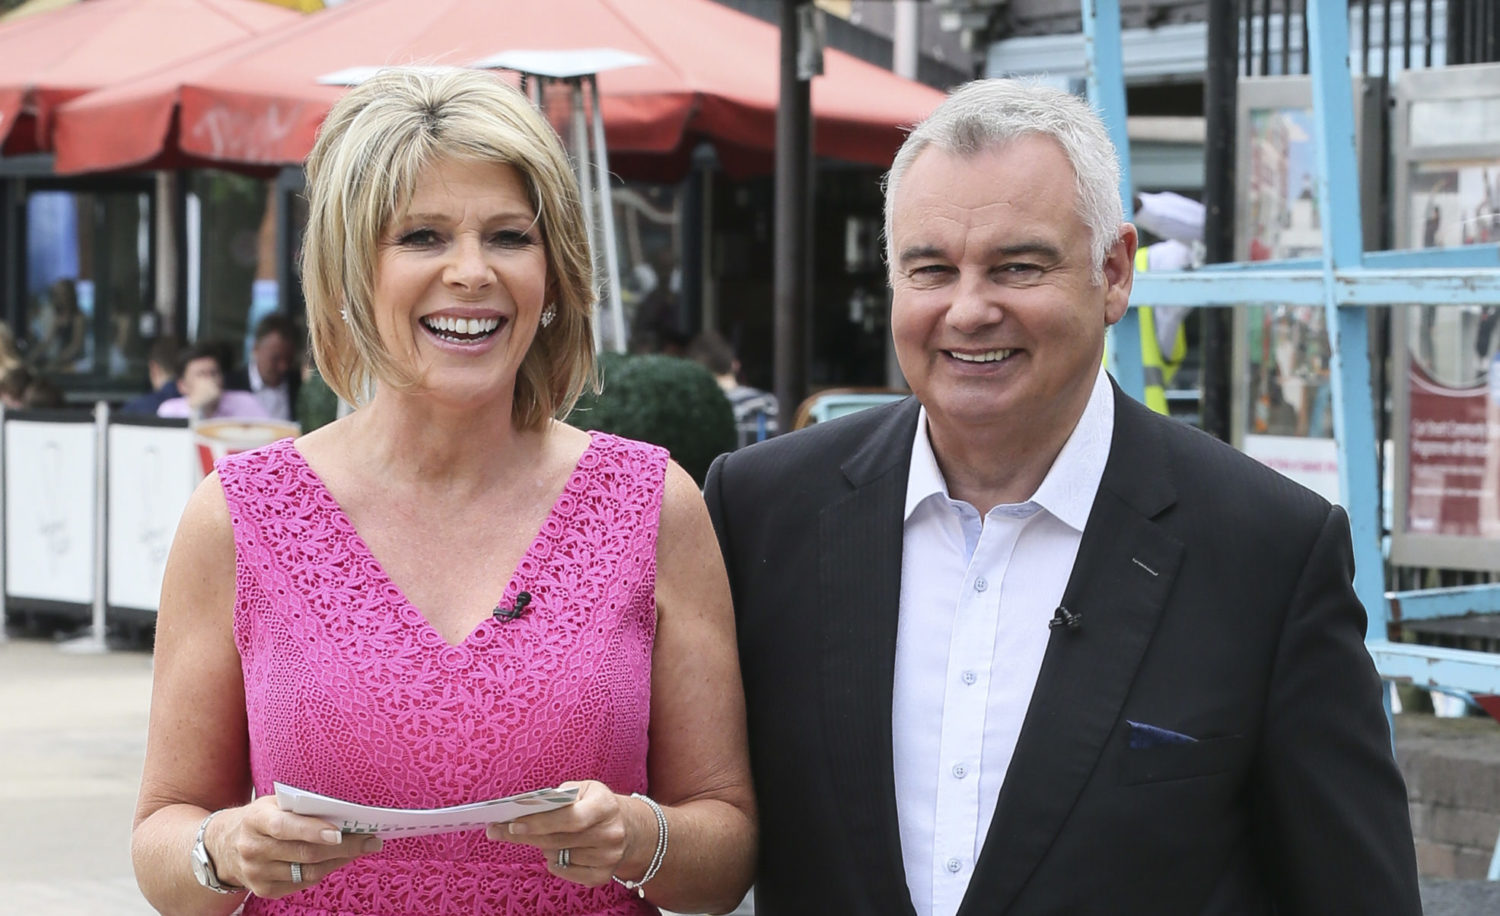 Ruth Langsford shares heartfelt message to husband Eamonn Holmes on 10th wedding anniversary